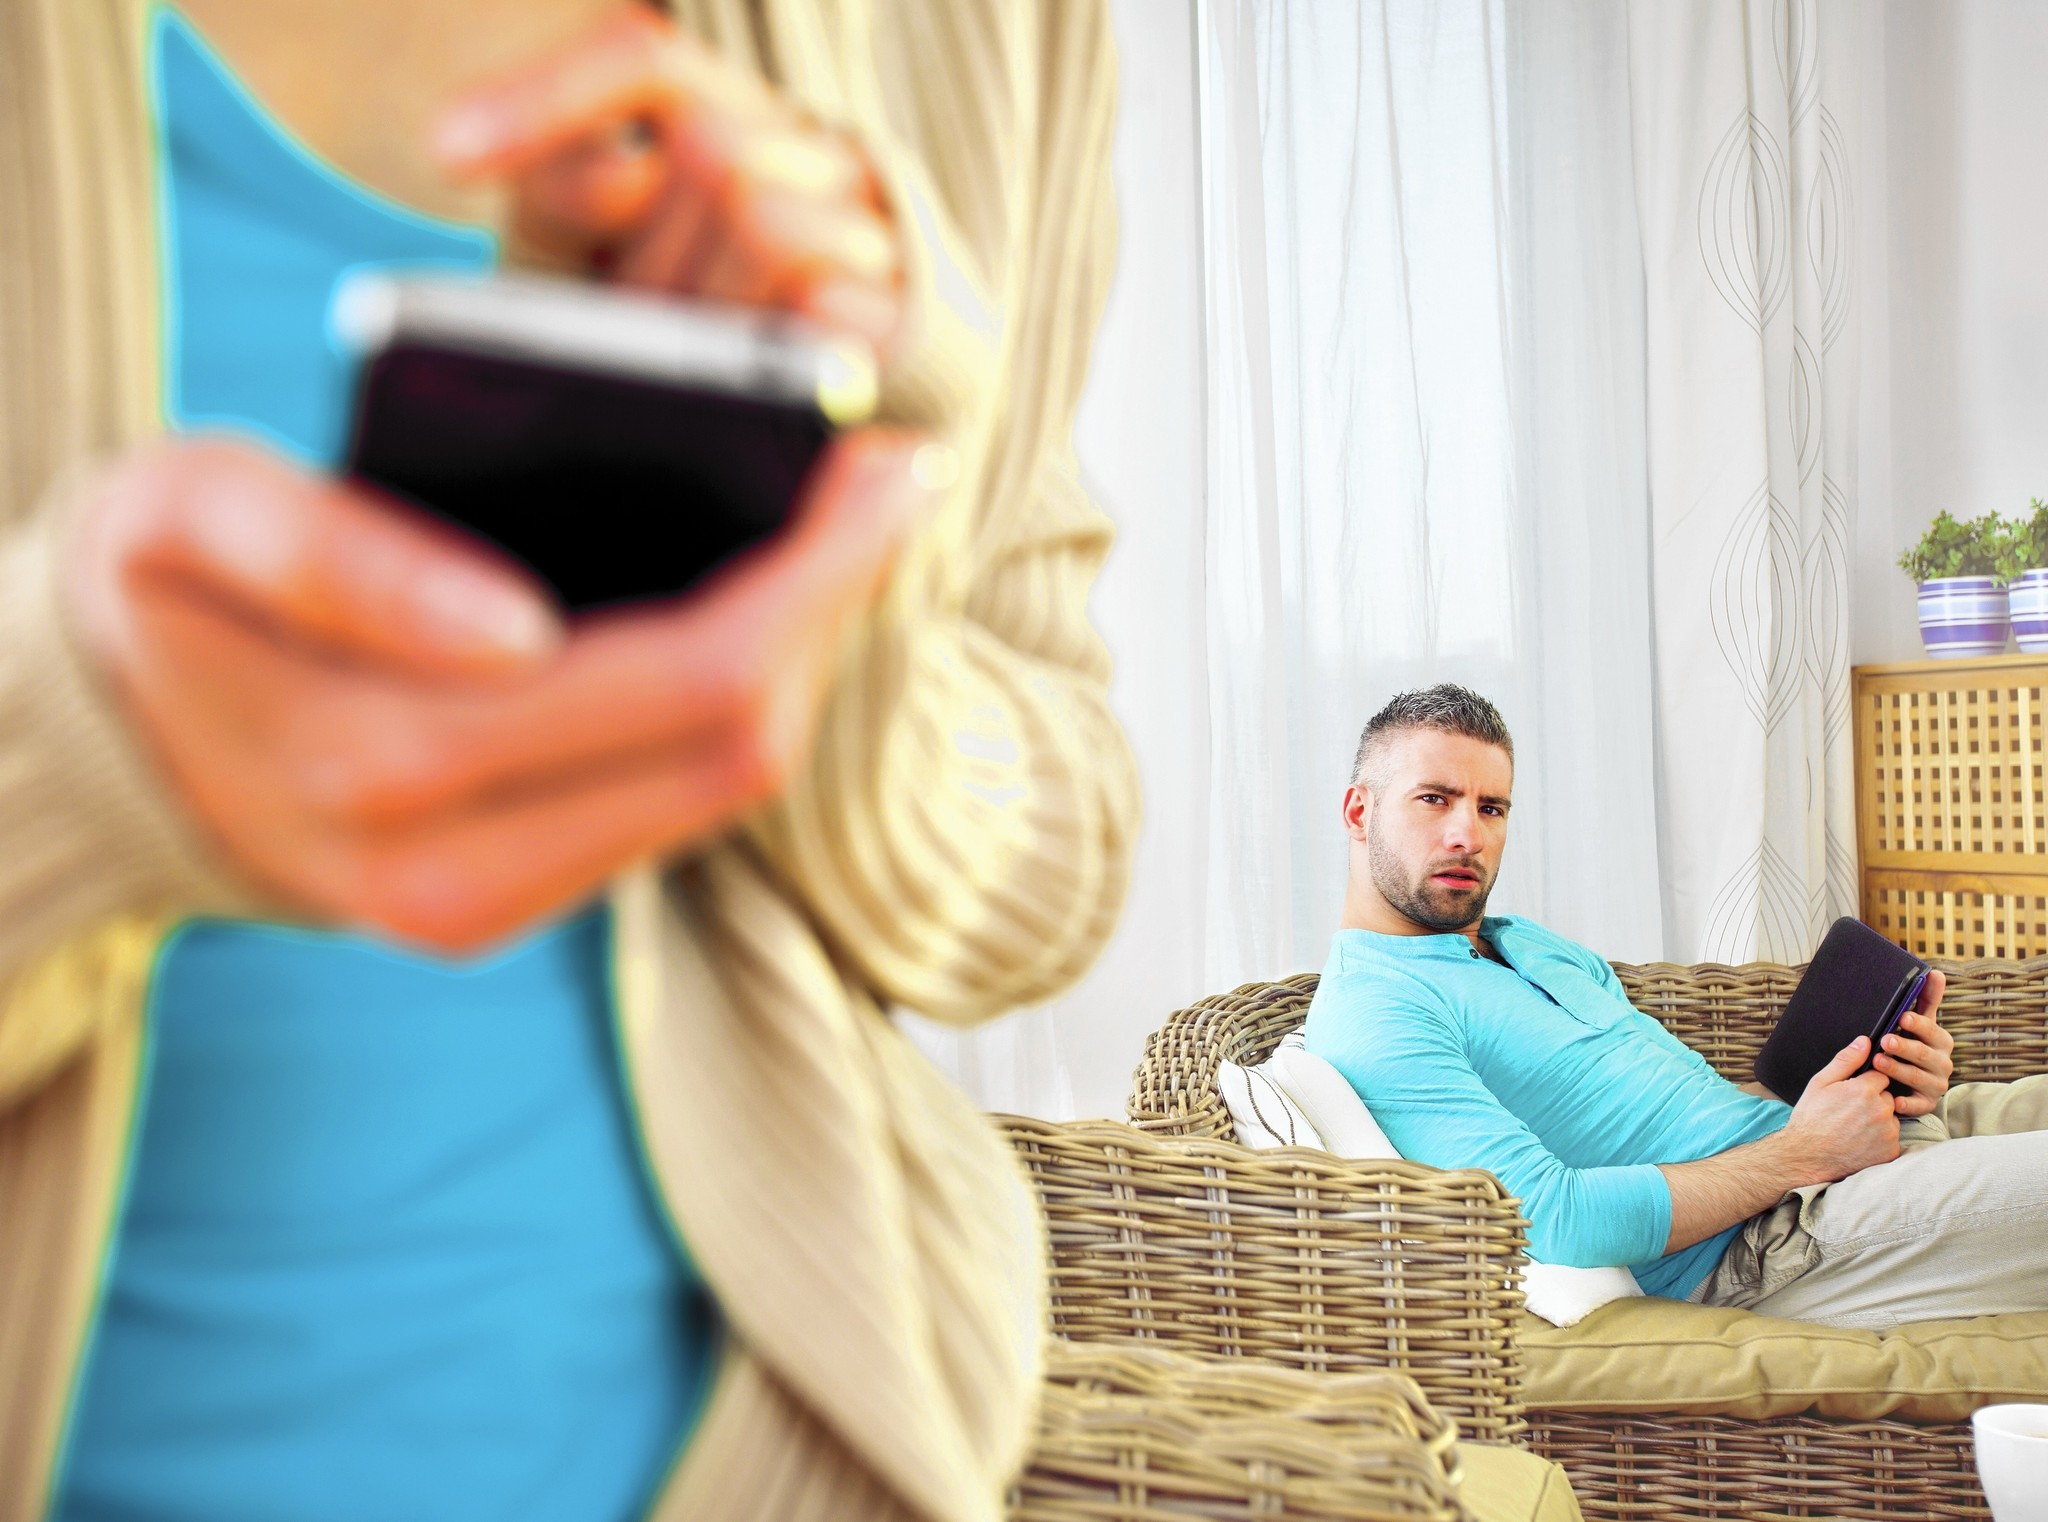 Does using social media make you more likely to cheat